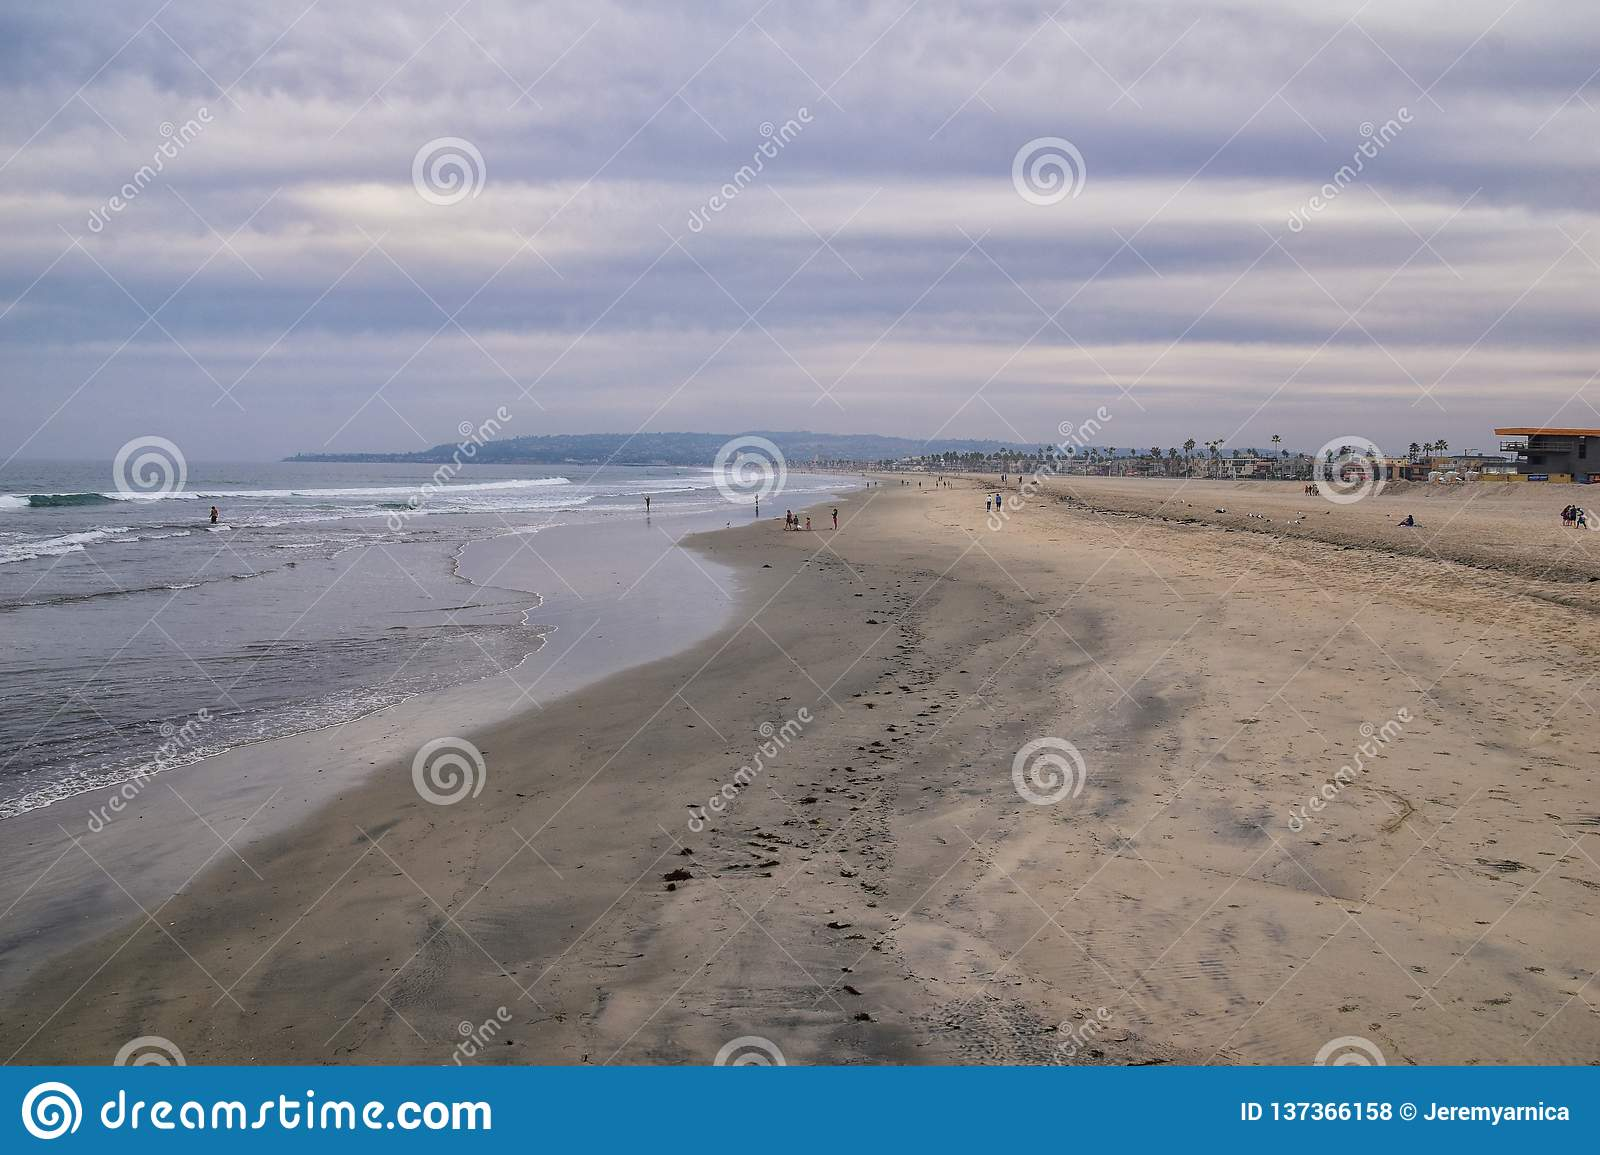 View from Mission Beach in San Diego, of Piers, Jetty and sand, around surfers, including warning signs, palm trees, waves, rocks,